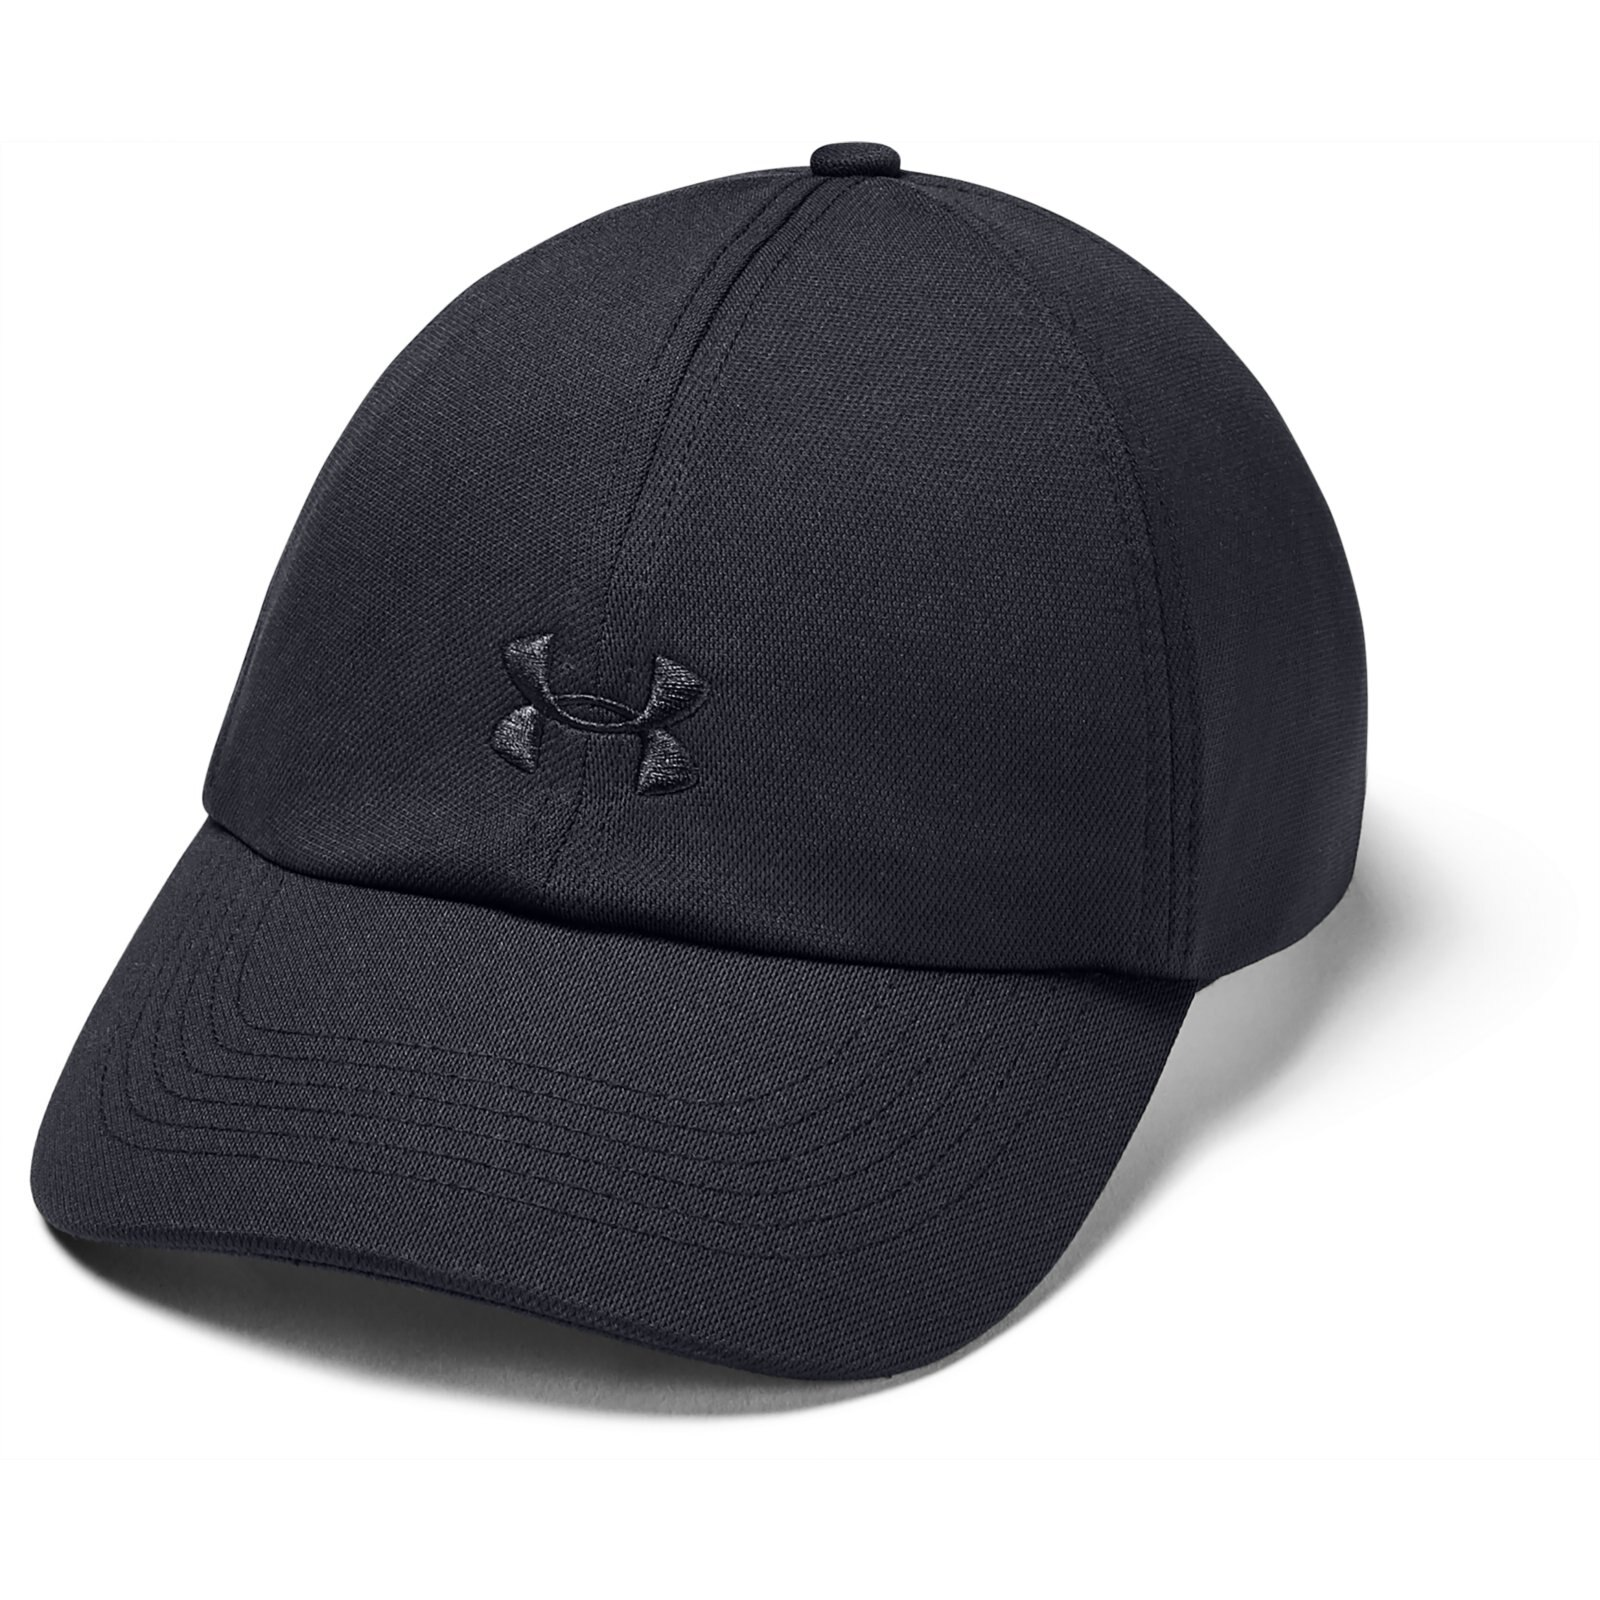 Кепка Play Up Cap Under Armour Черный